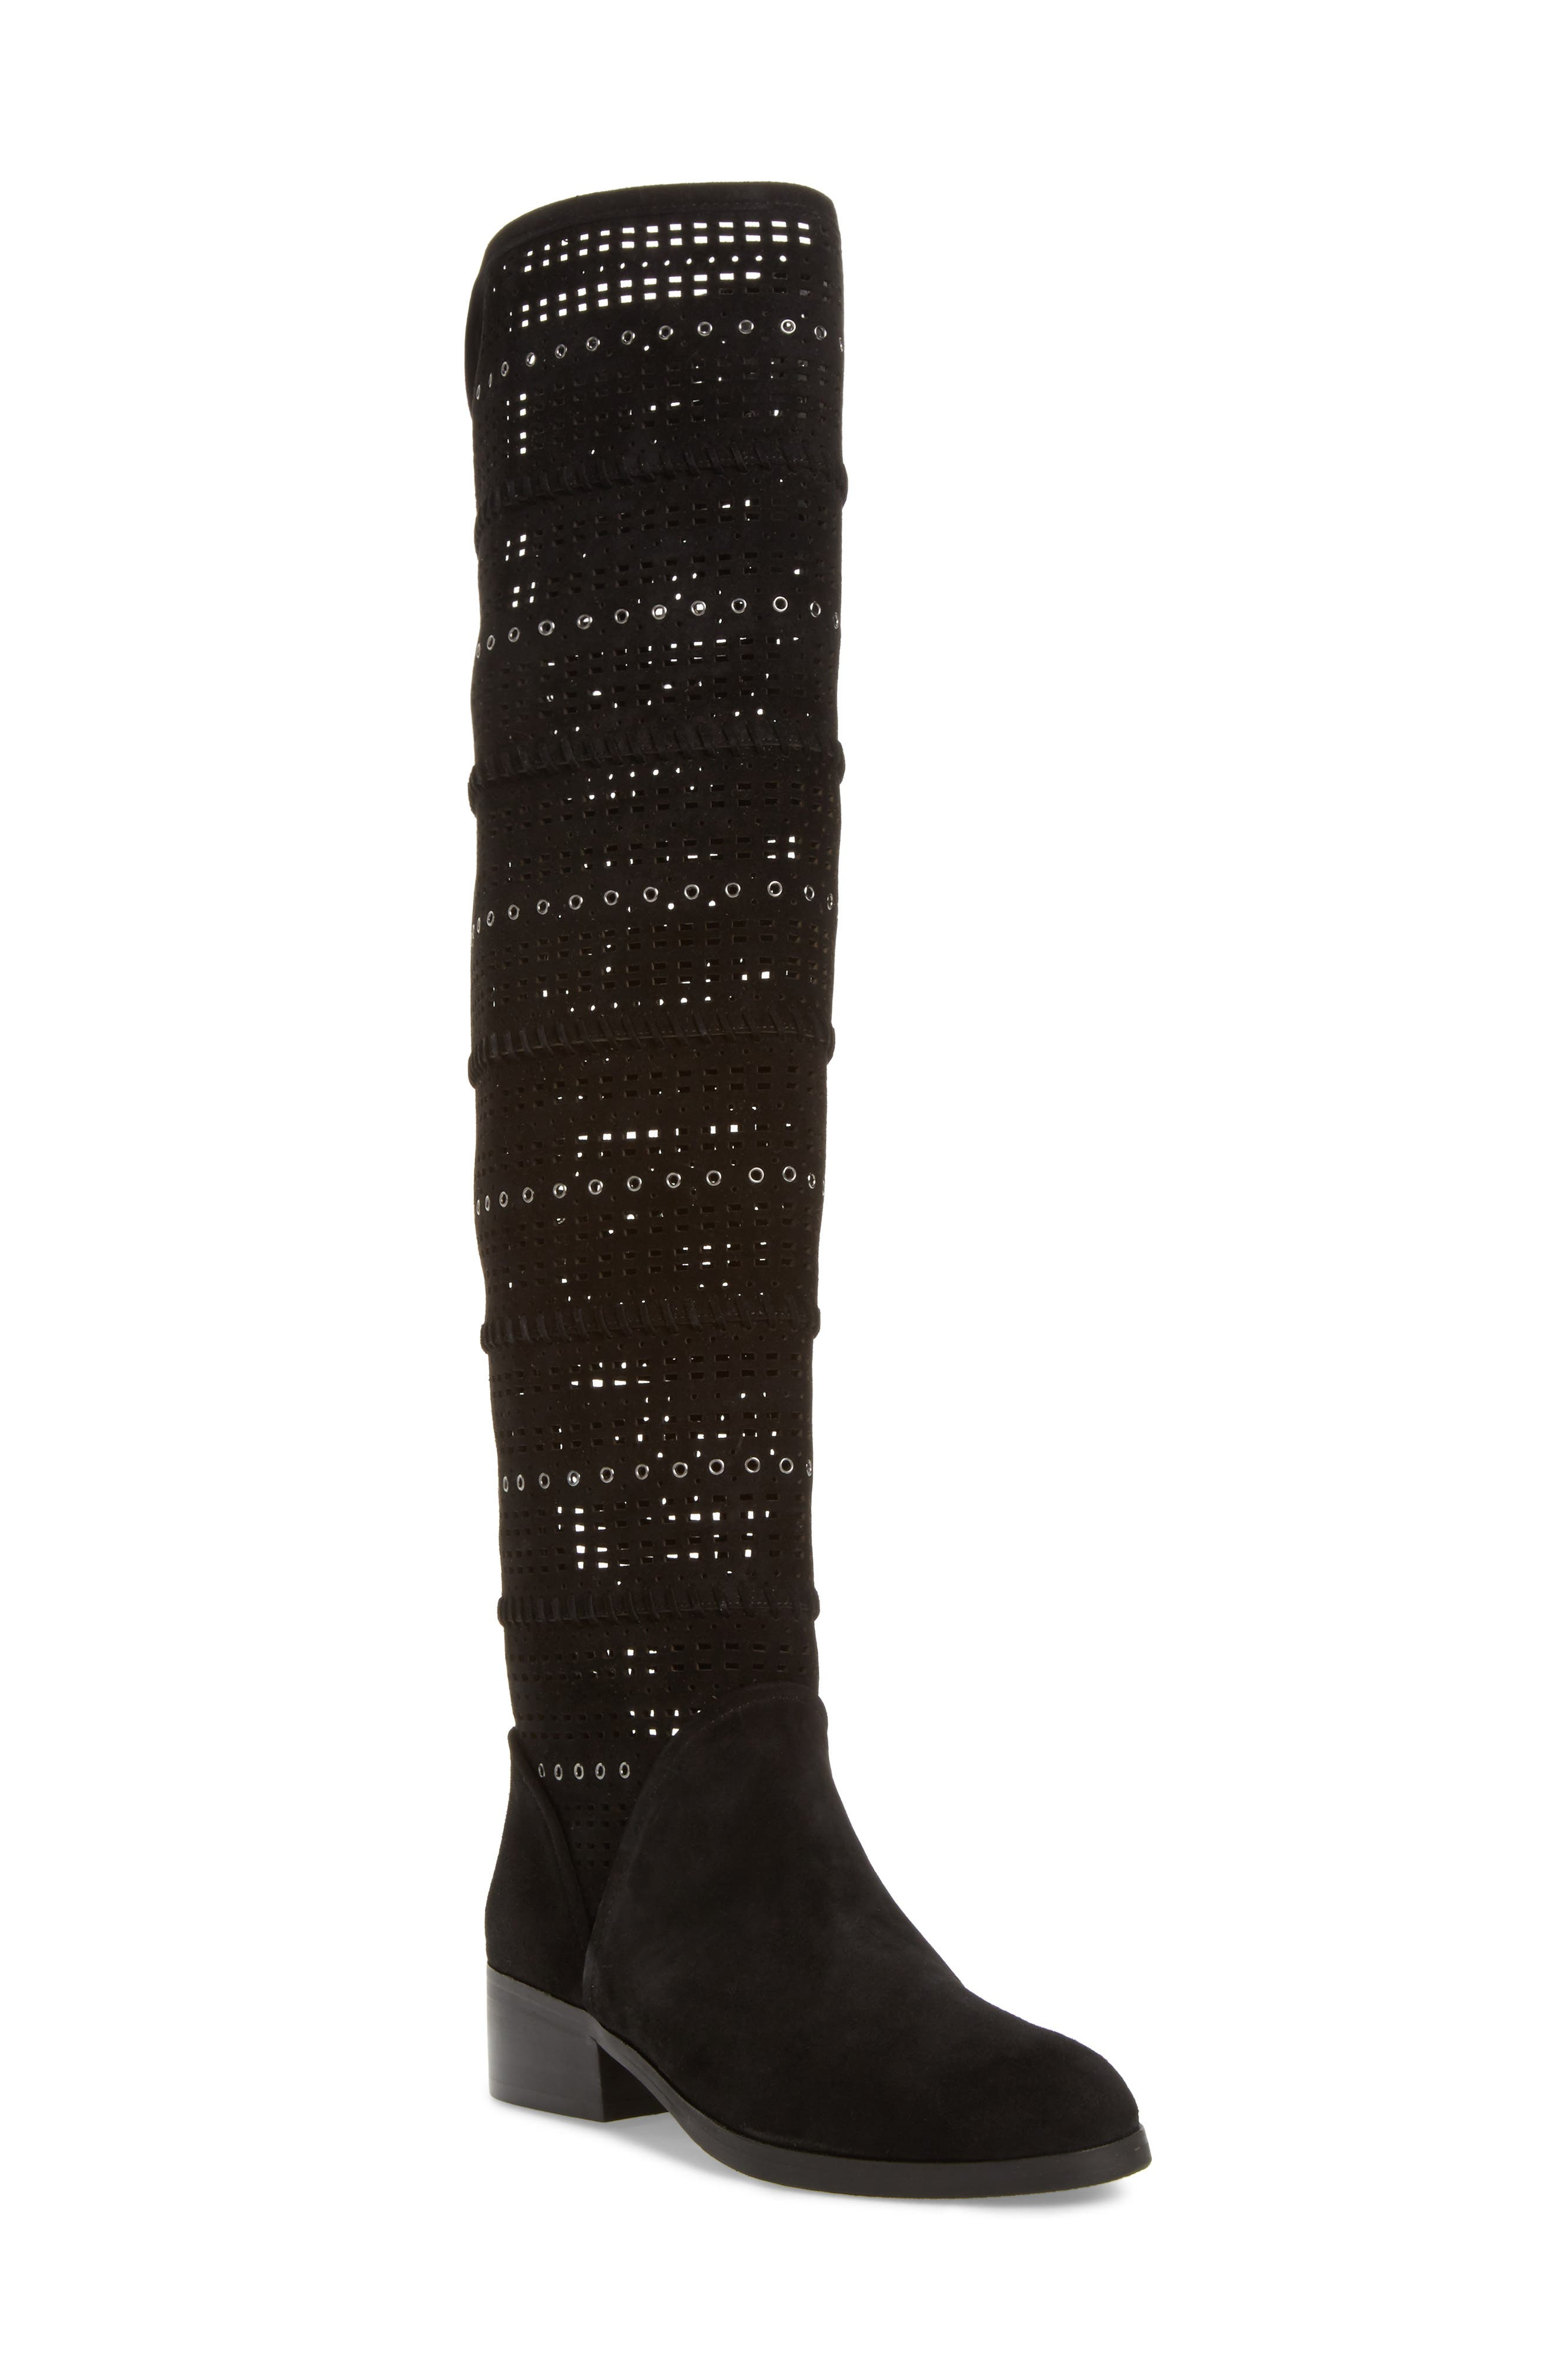 Devya Over the Knee Boot,                             Main thumbnail 1, color,                             001